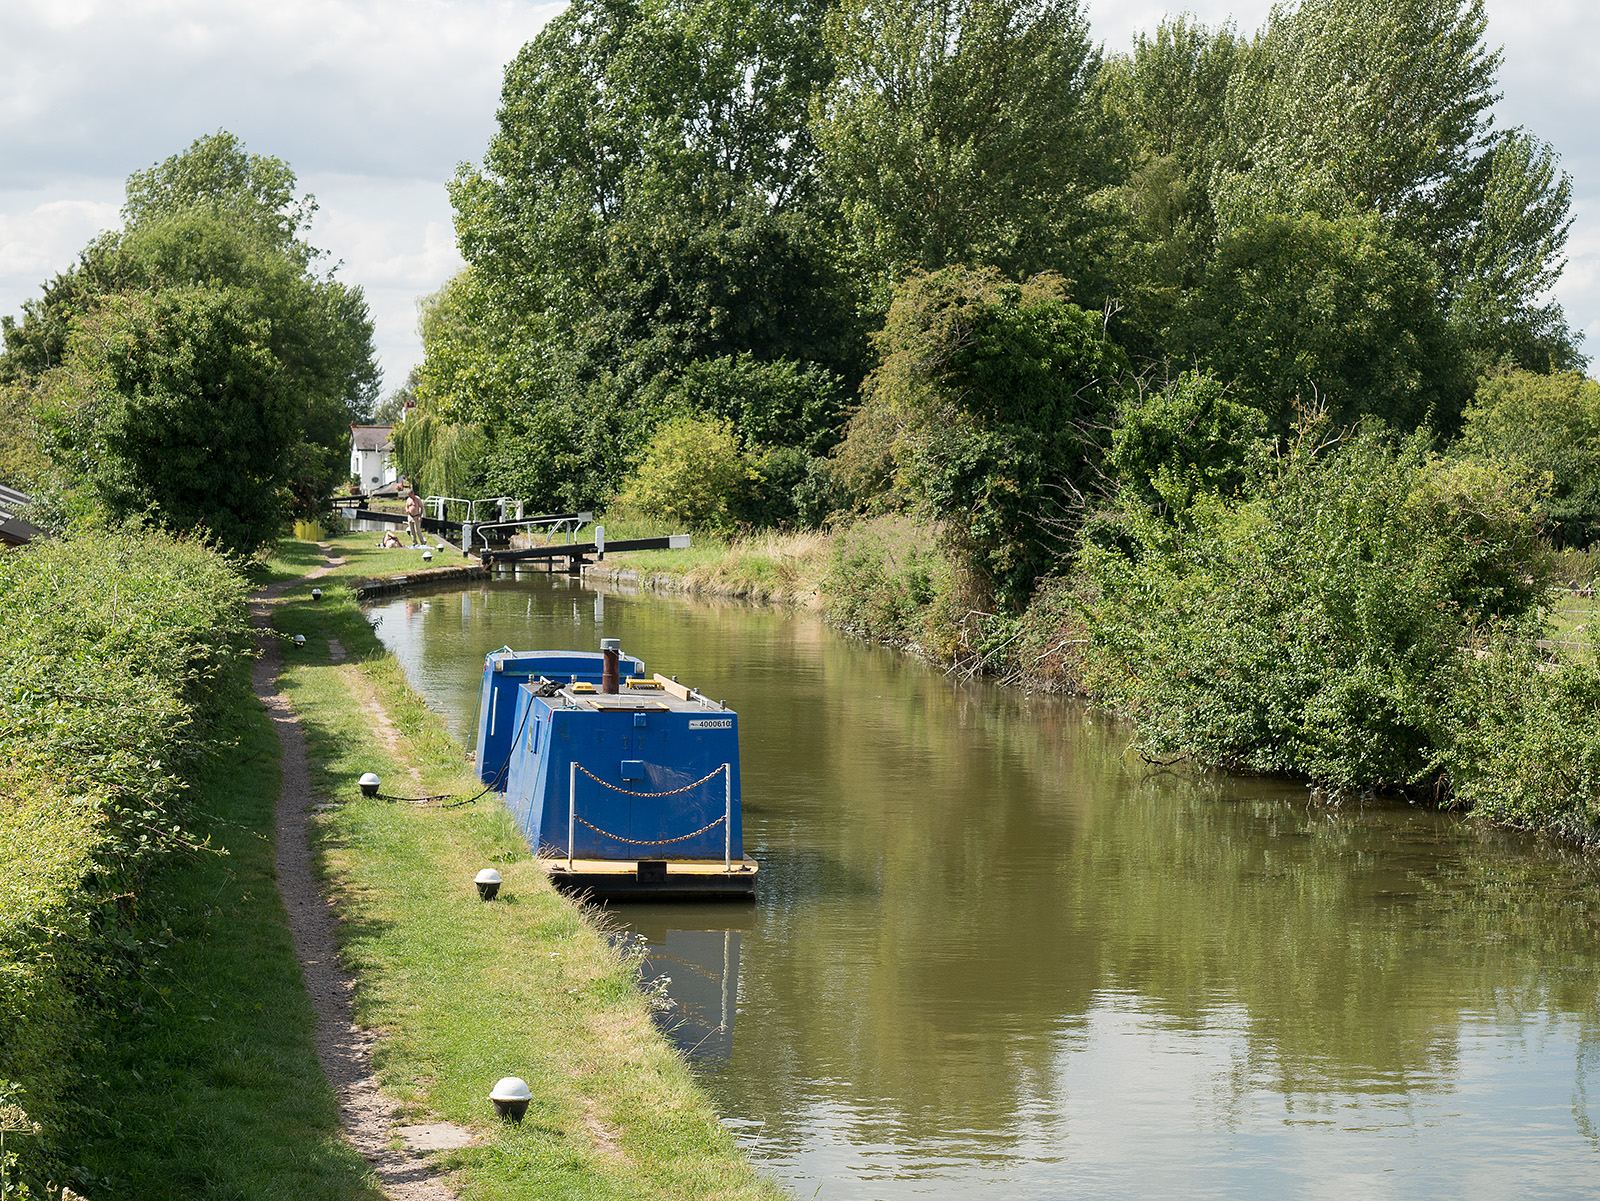 Looking towards Marsworth no 3 lock on the Aylesbury branch